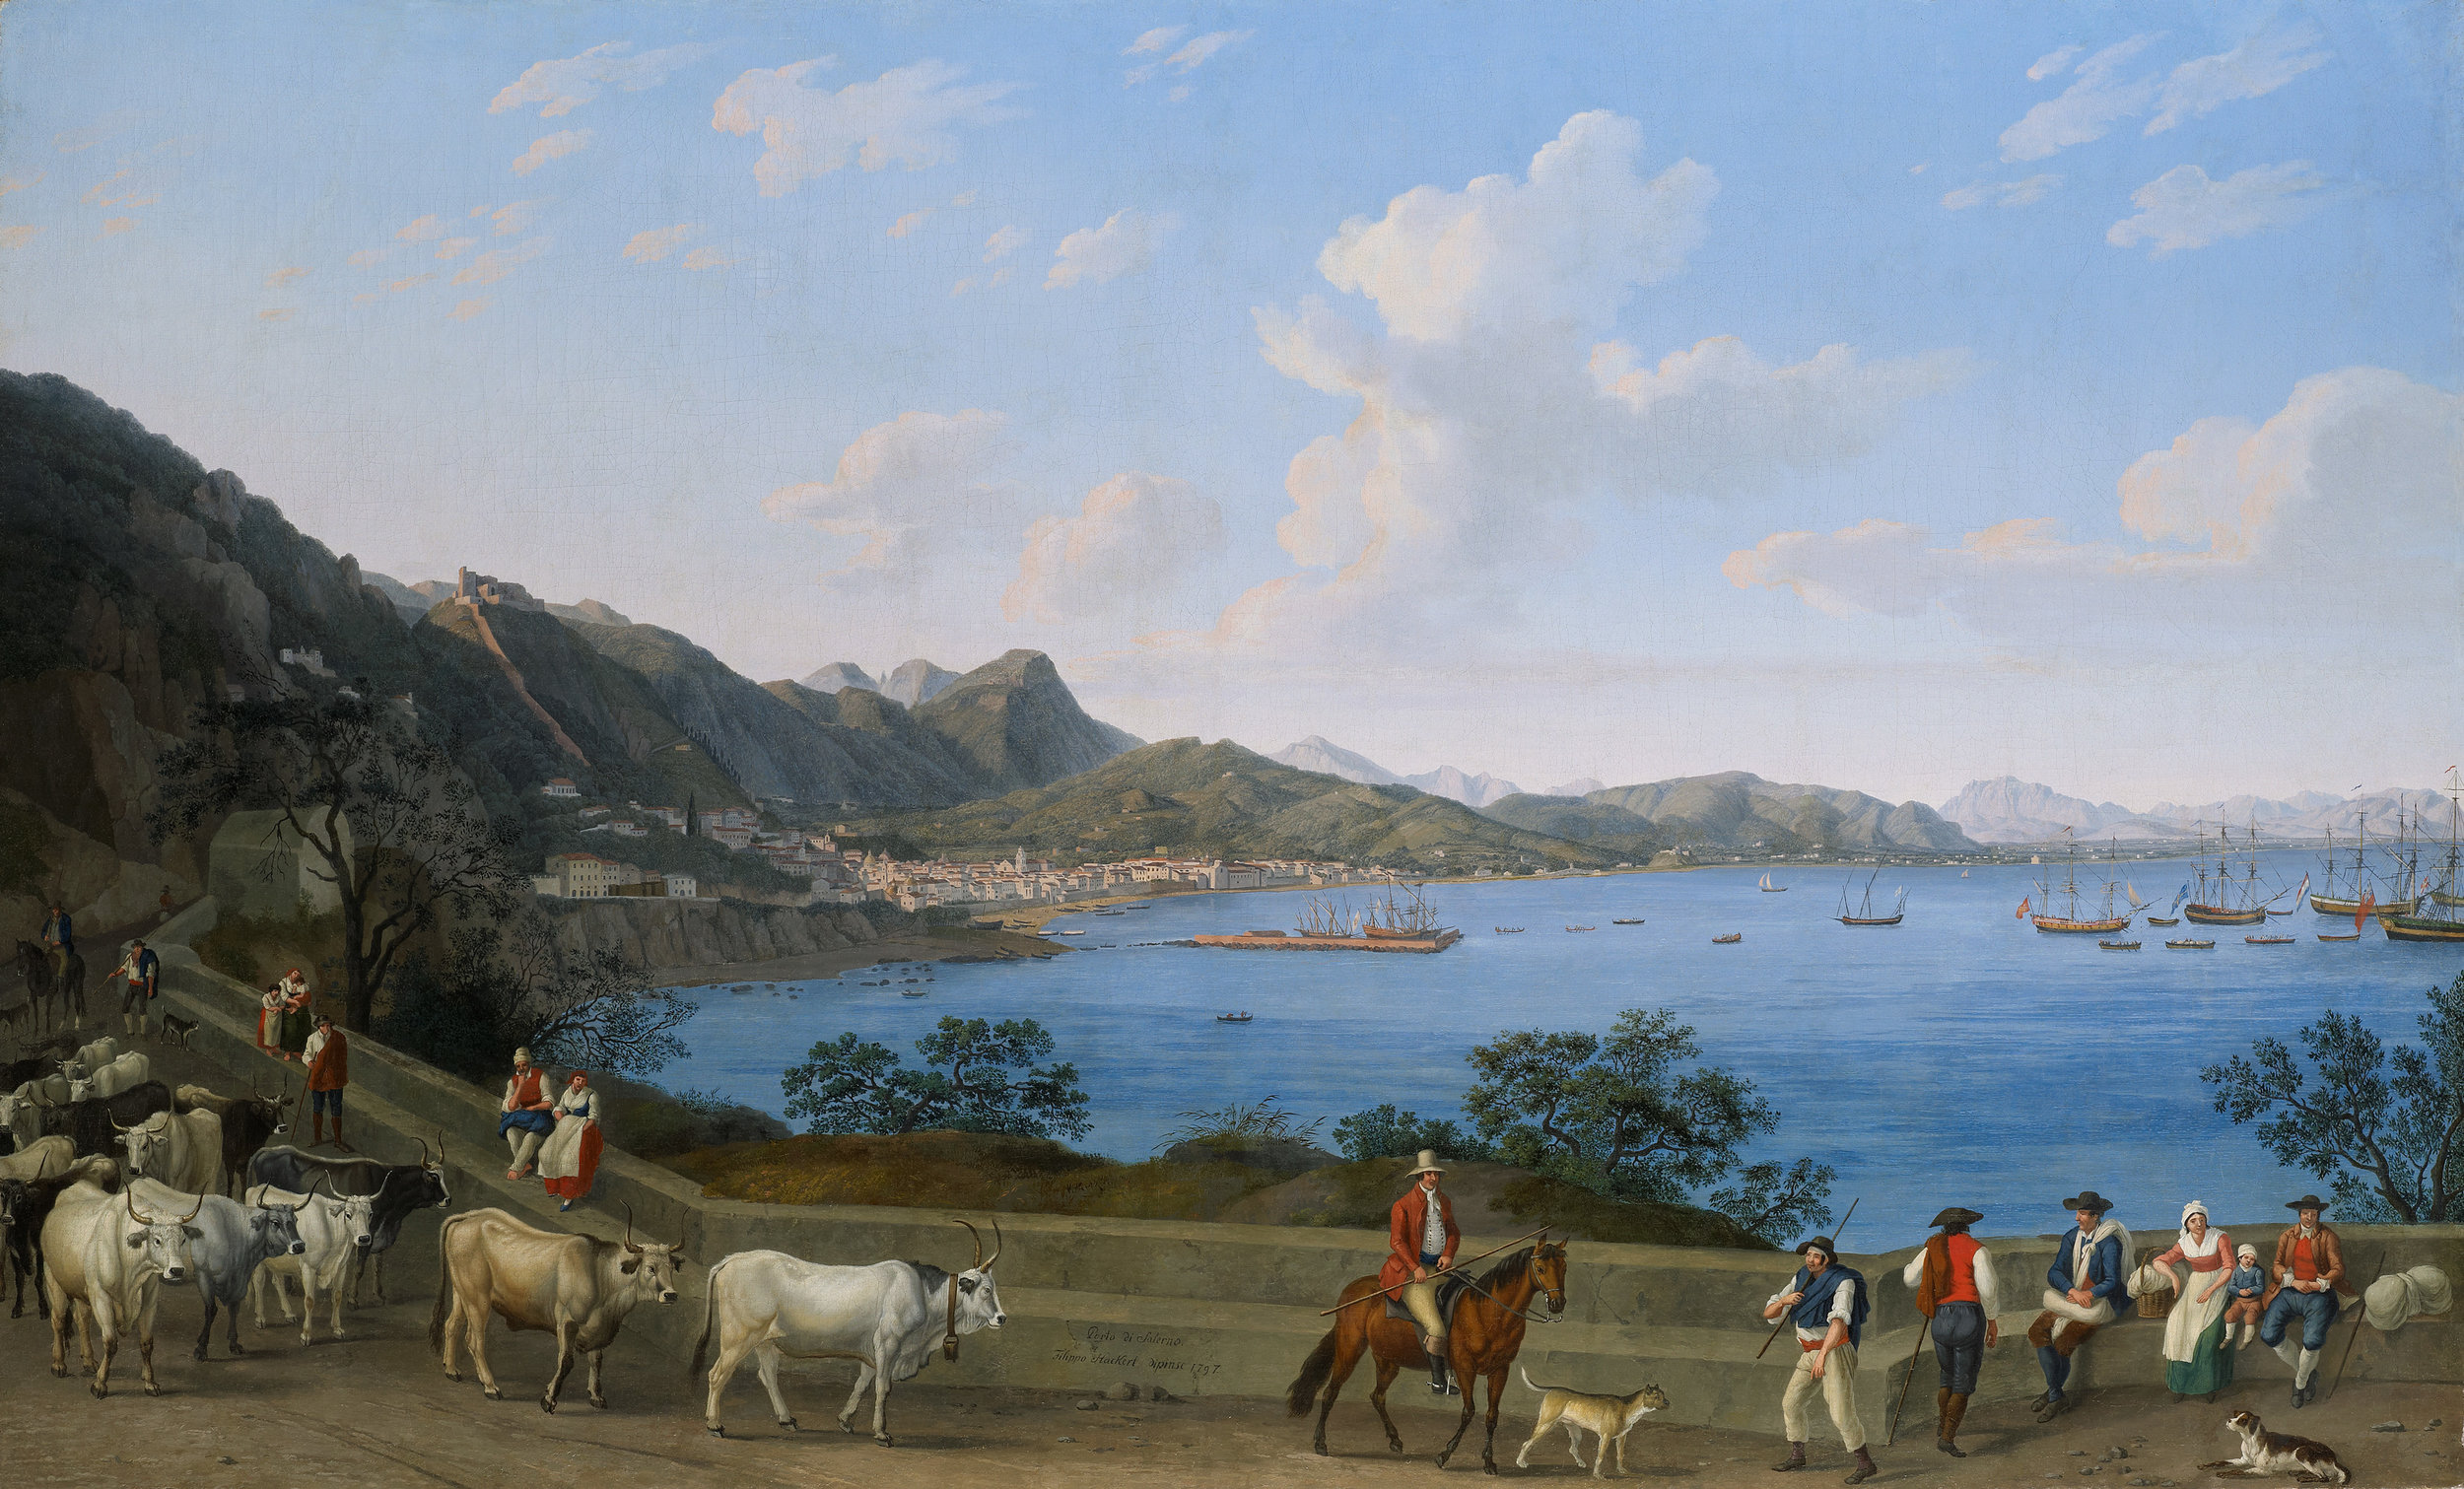 Jakob Philipp Hackert      (Prenzlau 1737 - 1807 San Pietro di Careggi)          The Port of Salerno from Vietri, with herdsmen and other figures in the foreground, with the Castello di Arechi beyond and shipping vessels in the bay       Oil on canvas 135.7 x 221.6 cm             Inscribed, signed and dated  Porto di Salerno / Filippo Hackert dipinse 1797  (lower centre)